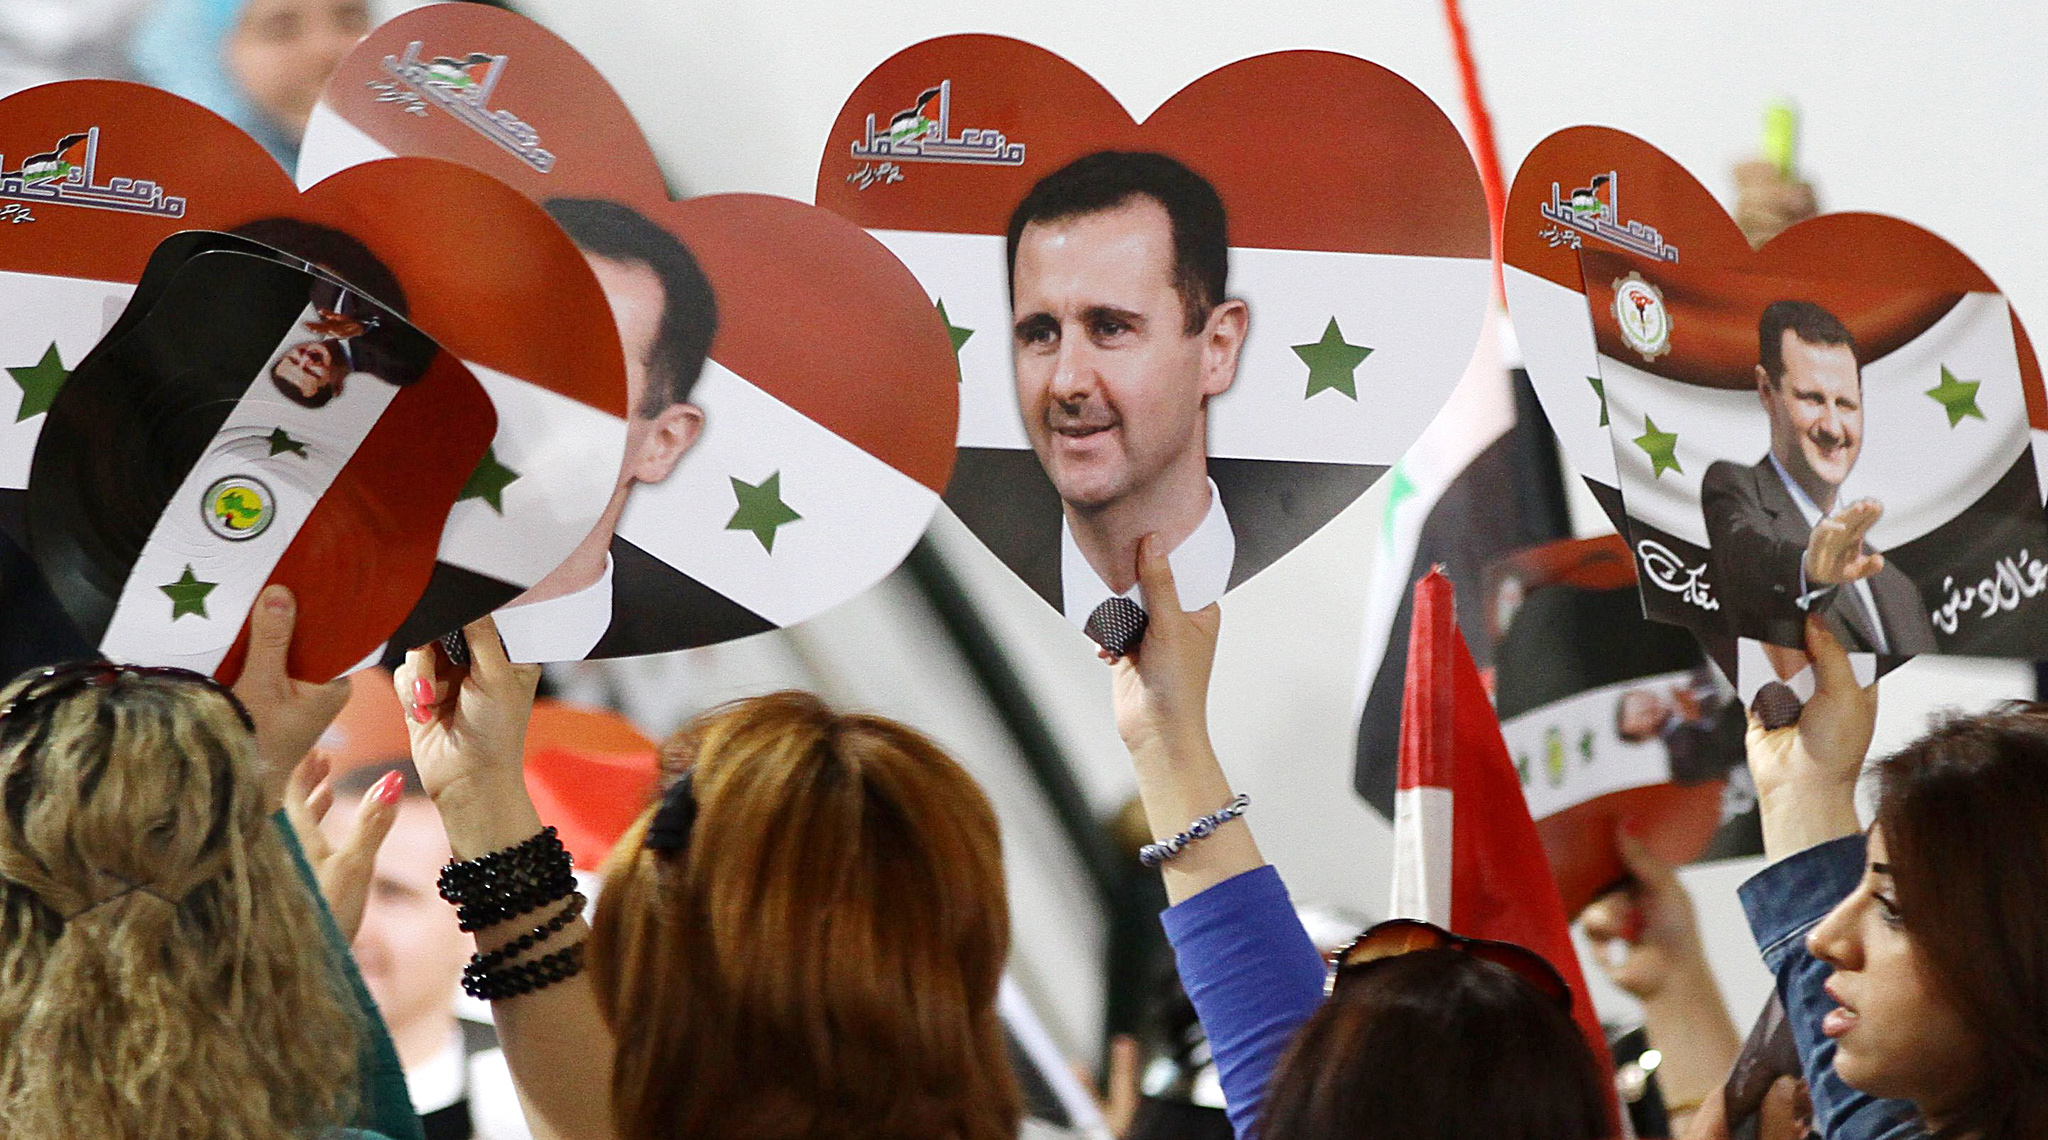 Syrians wave flags and placards bearing ...Syrians wave flags and placards bearing portraits President Bashar al-Assad during a meeting gathering workers to support his candidacy in upcoming presidential elections on May 13, 2014 in the capital Damscus. The campaign for Syria's elections that started this week, has become a tribute to incumbent Bashar al-Assad, and in the streets of Damascus, residents have little doubt who will win the June poll. AFP PHOTO/ LOUAI BESHARALOUAI BESHARA/AFP/Getty Images